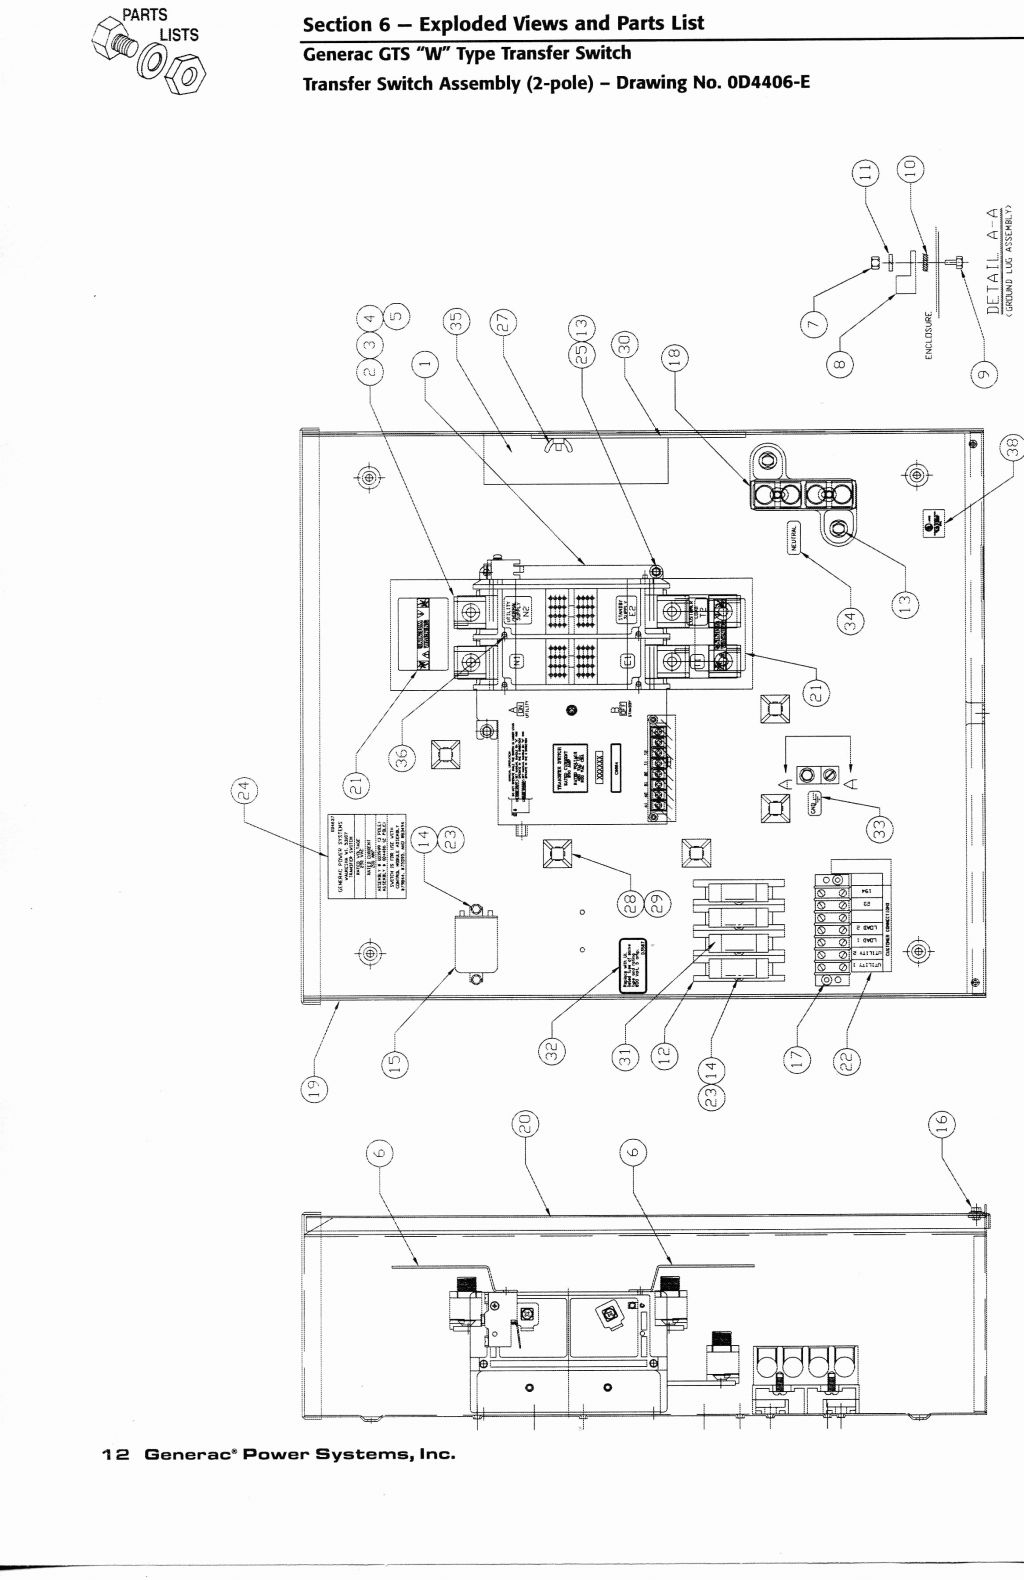 generac gts transfer switch wiring diagram download